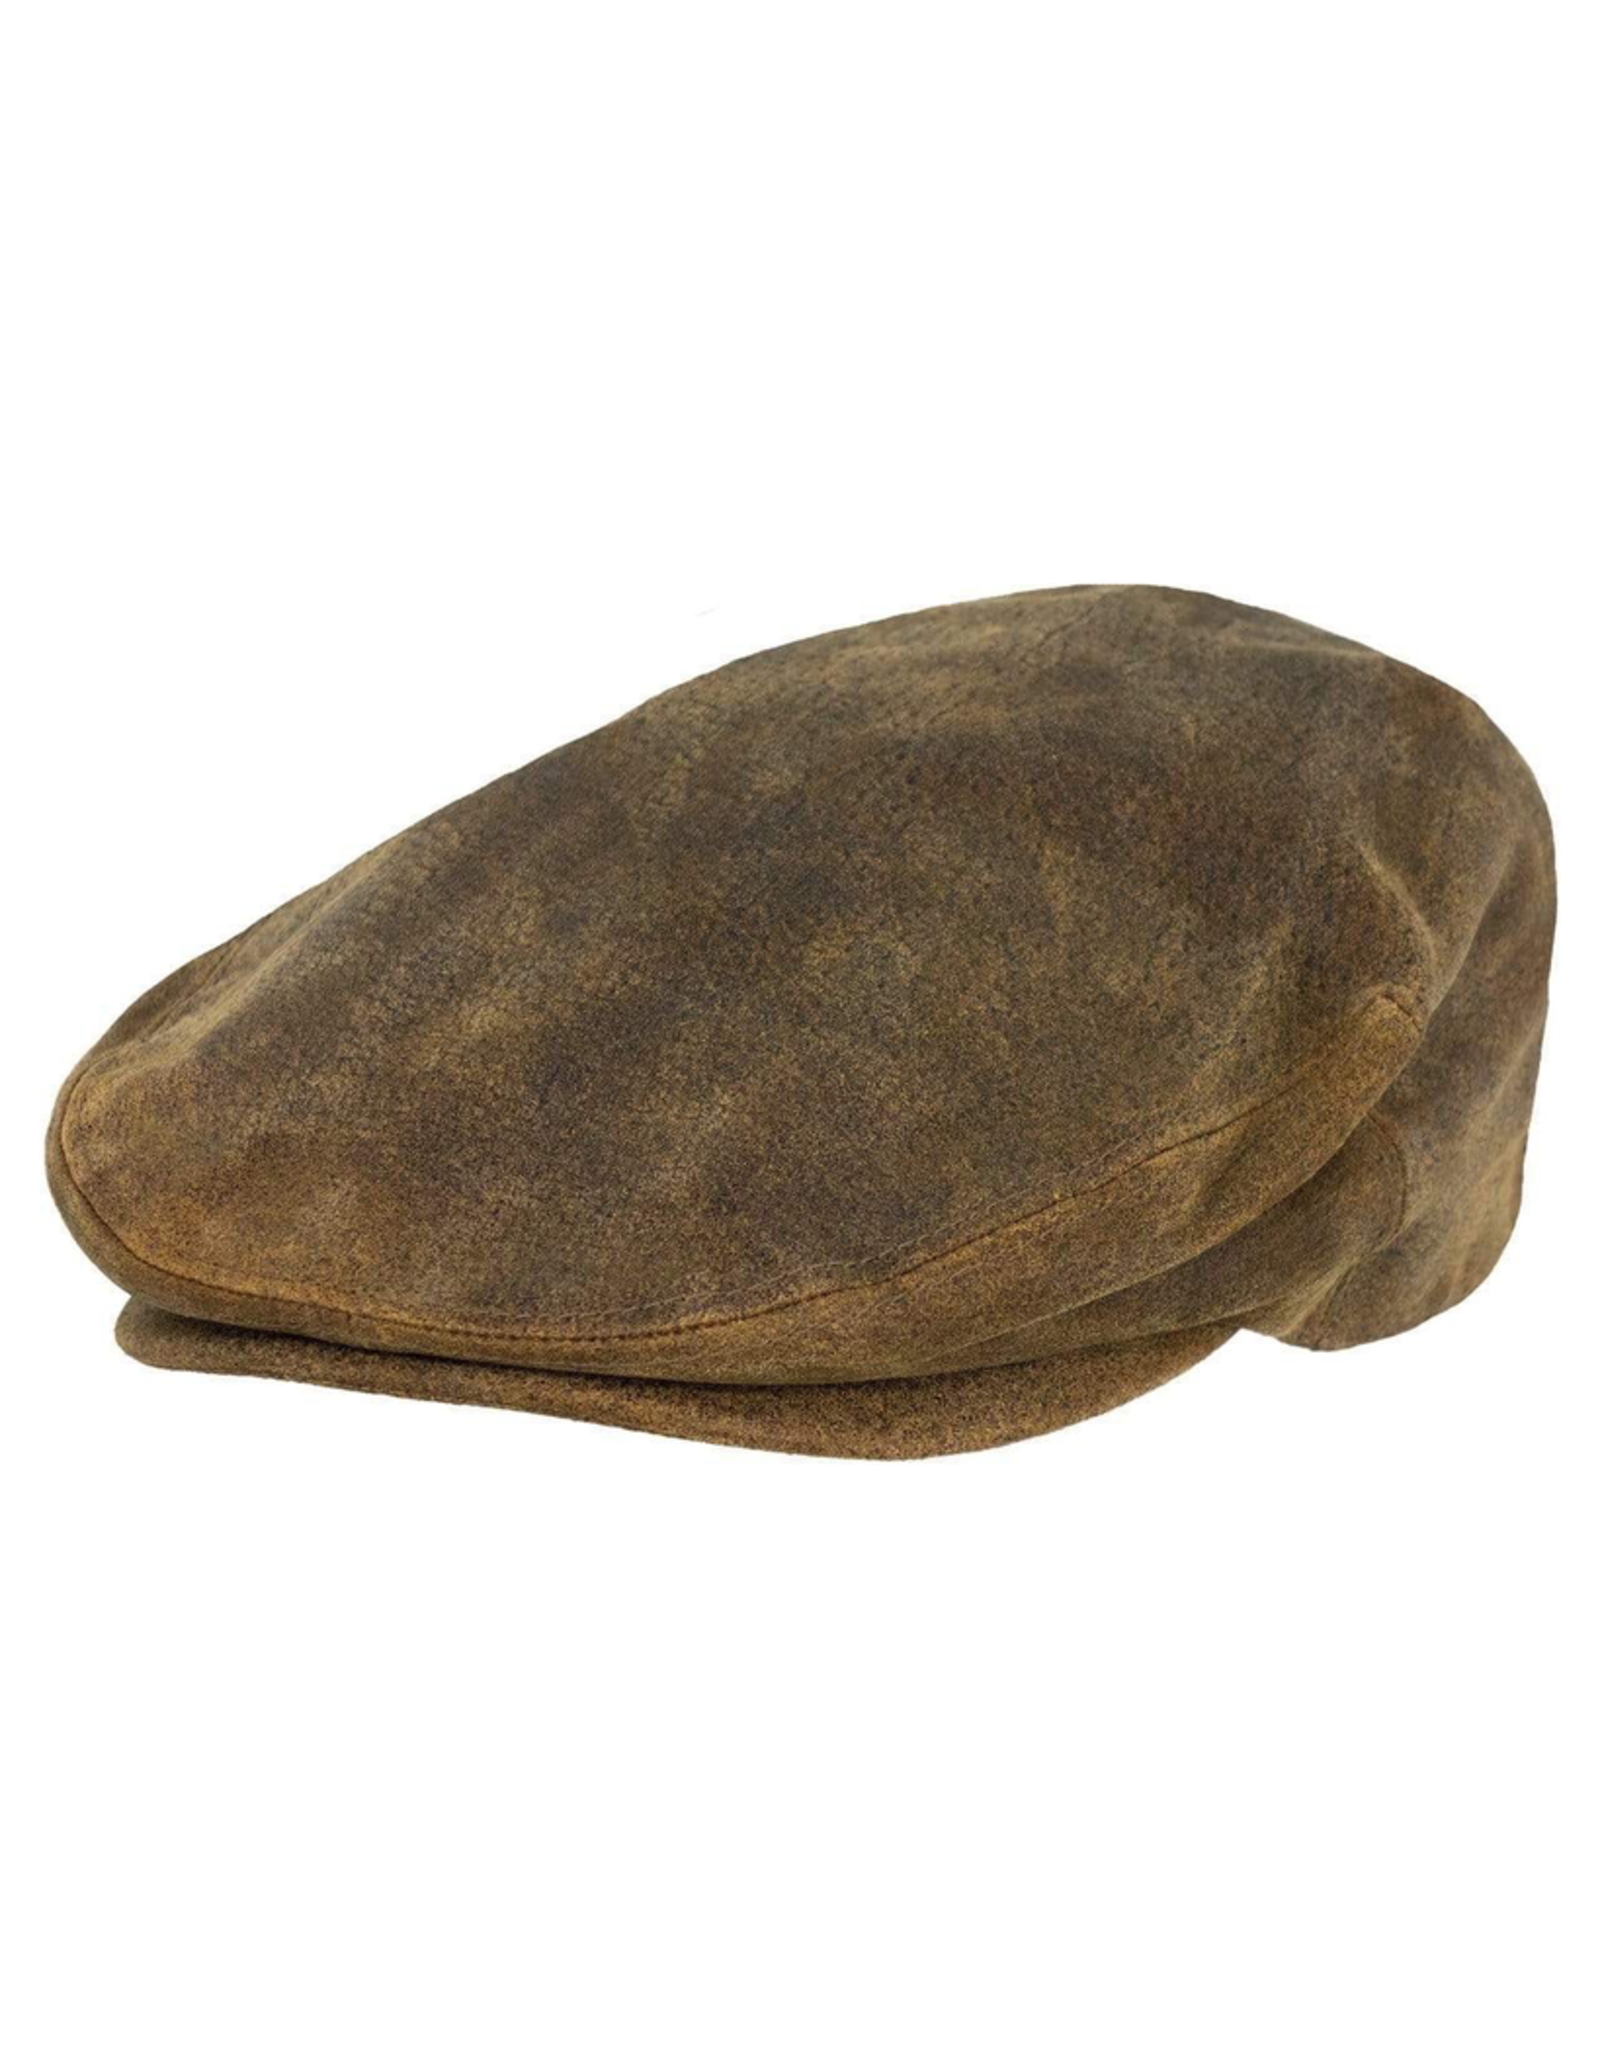 Hats OUTBACK Leather Ascot Cap No. 14834